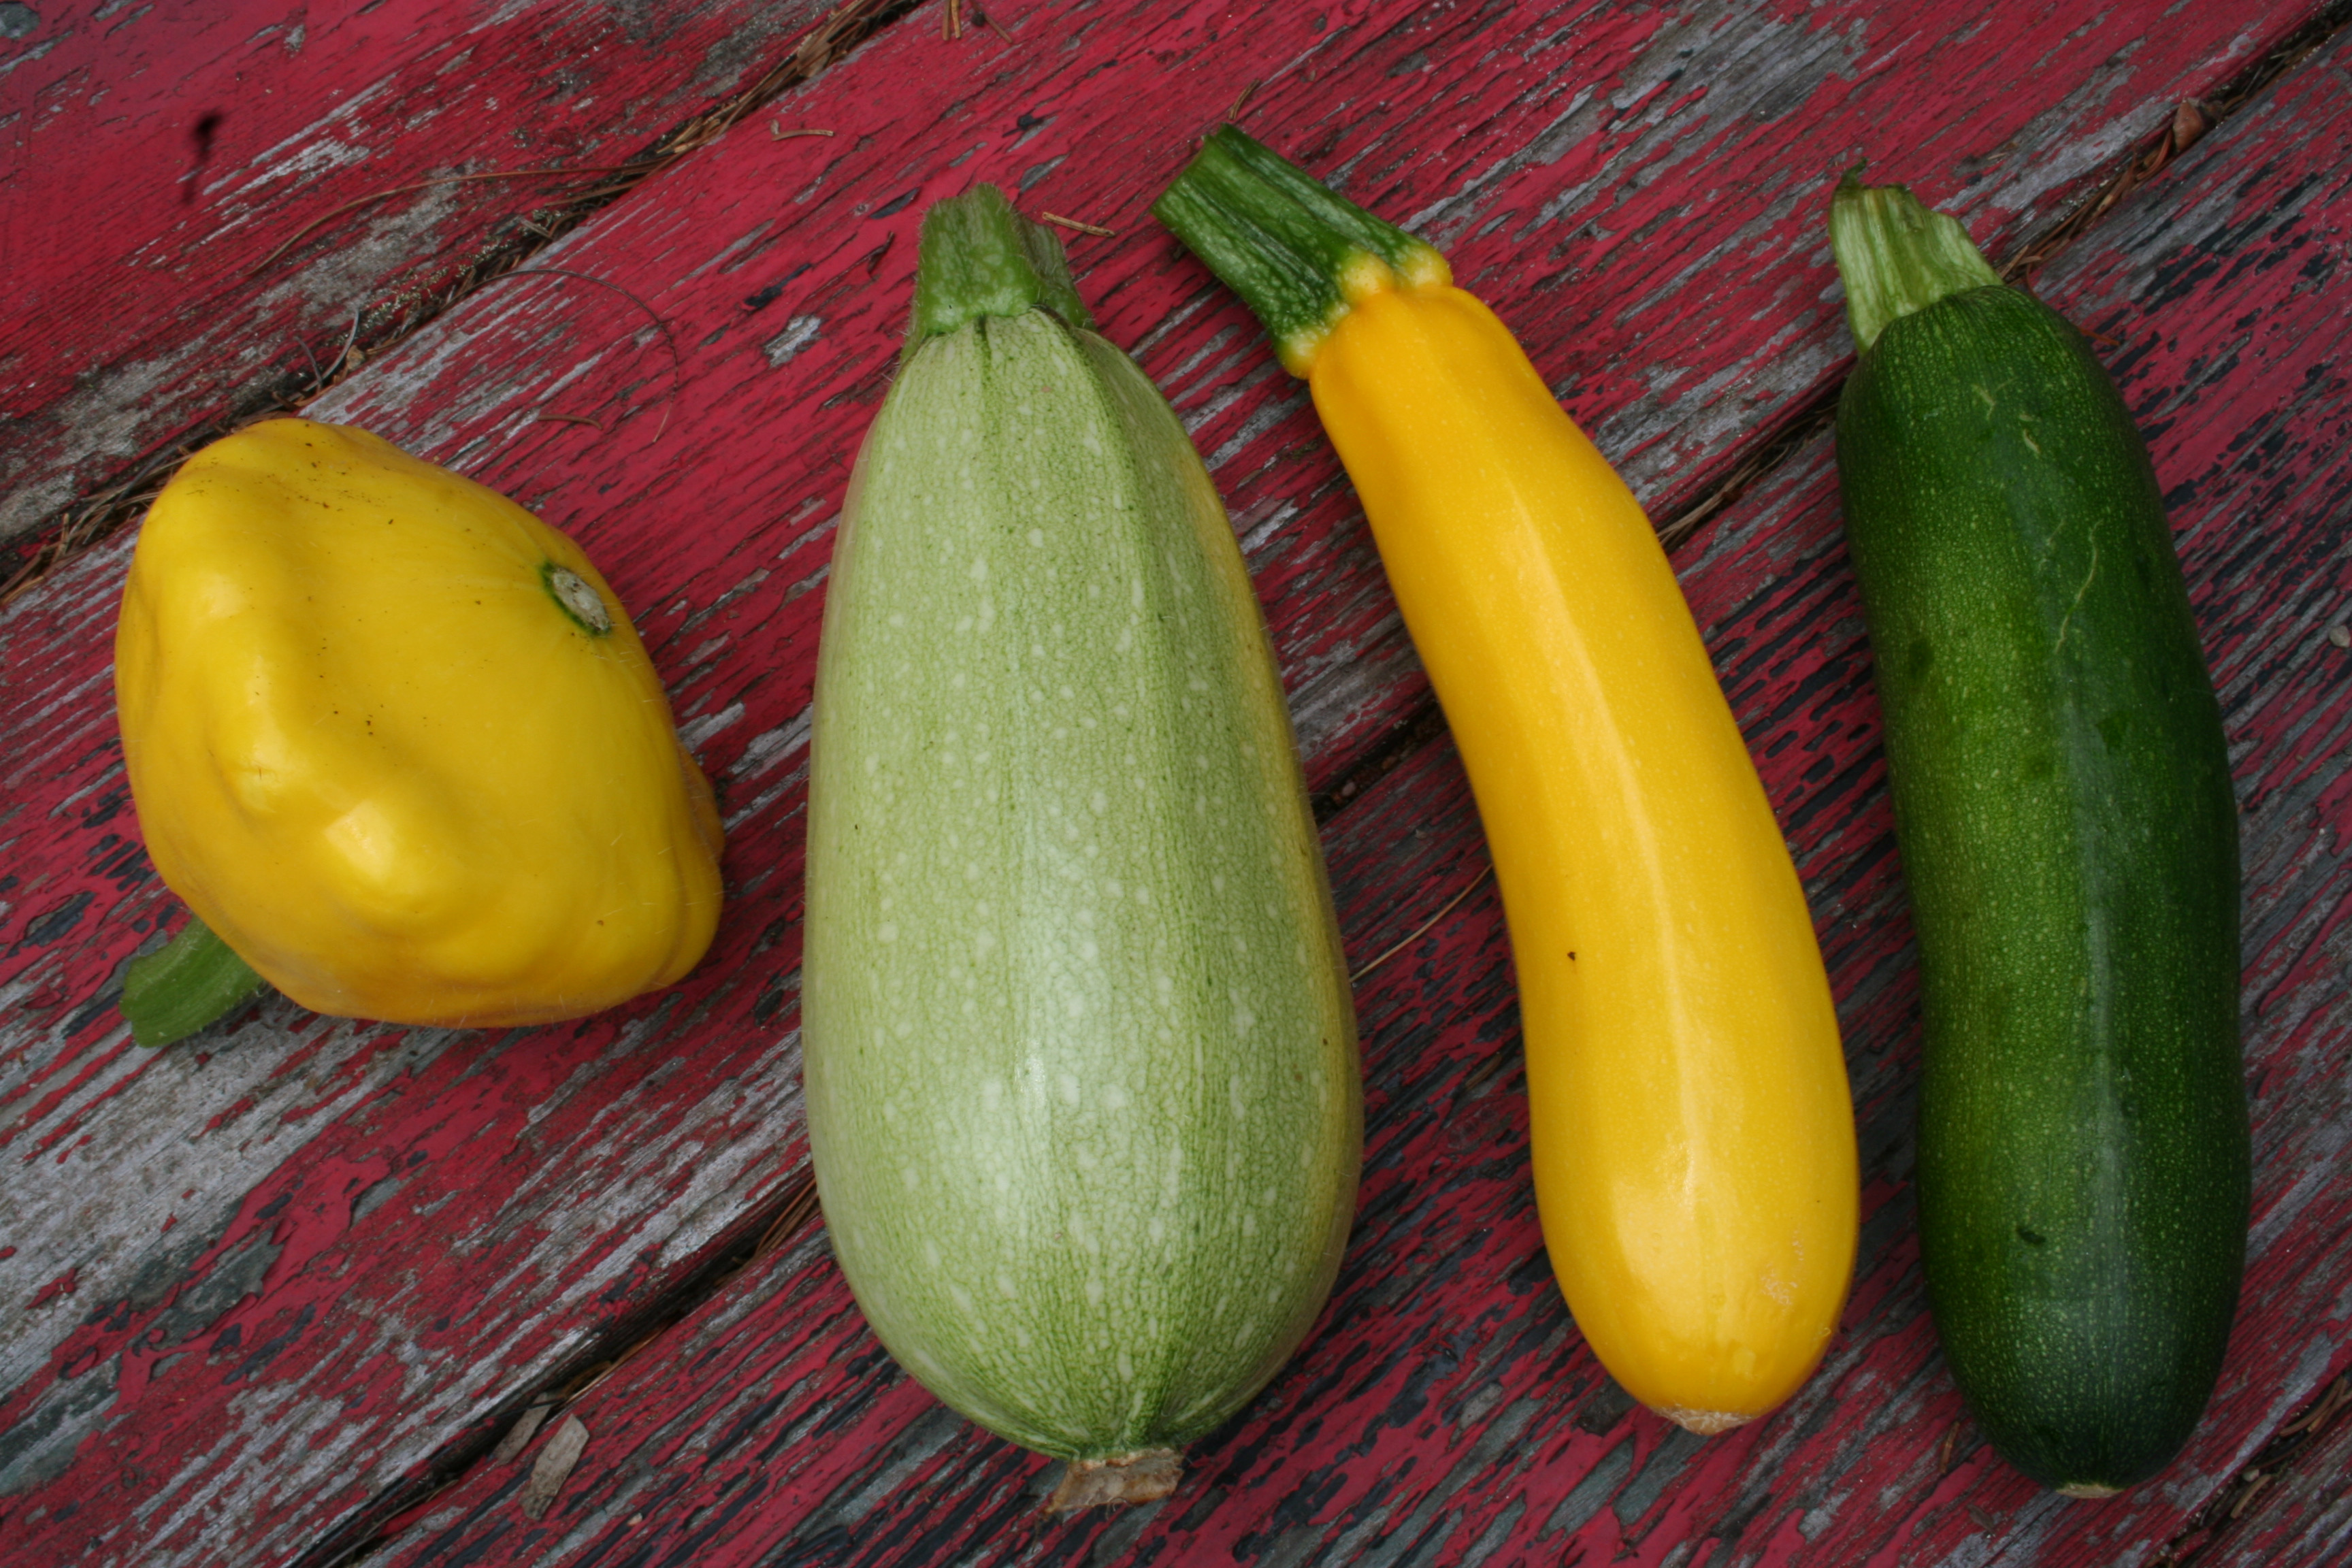 Summer Squash Varieties  The Ve able Garden in August – Gardening in Tune with